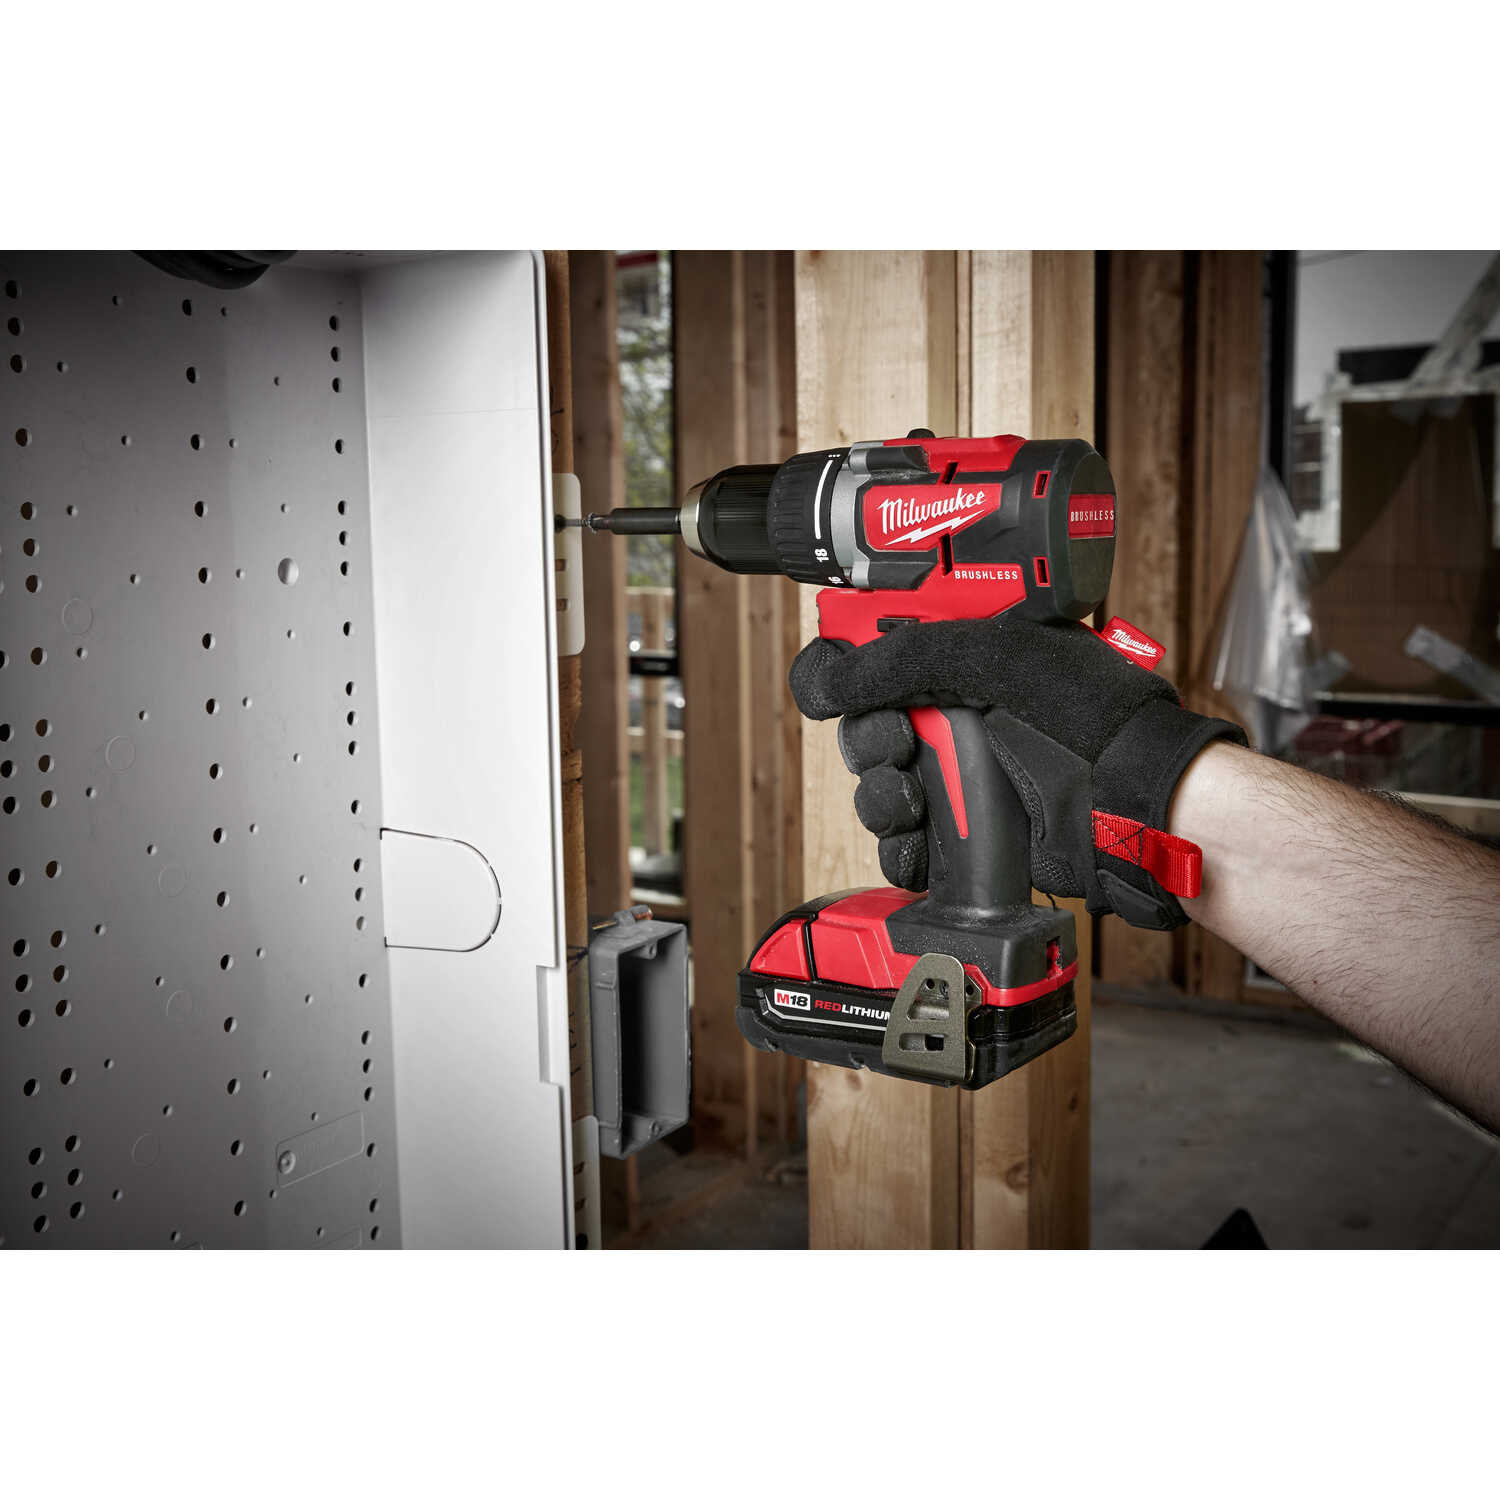 Milwaukee  M18  18 volt Brushless  Cordless Compact Drill/Driver  Kit  1/2 in. 1800 rpm